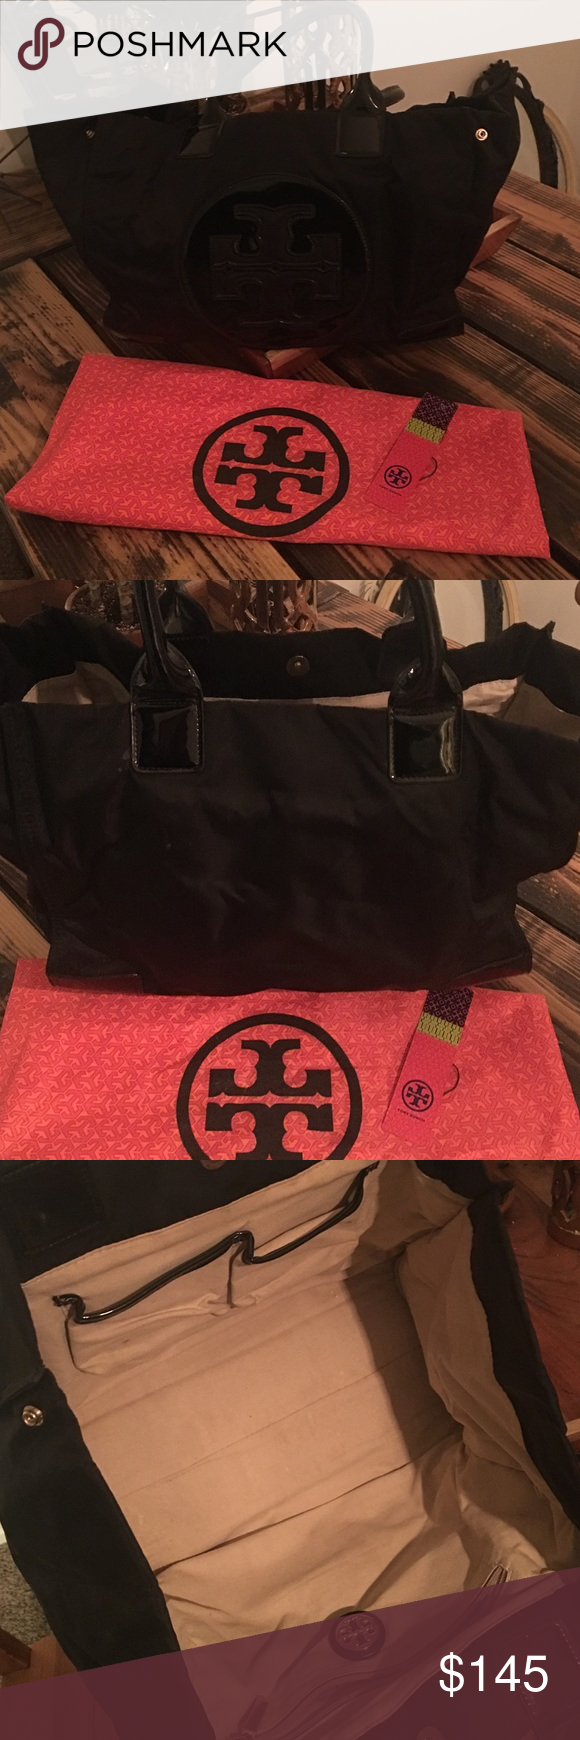 Tory burch black nylon tote Used a couple times. Still in great condition, no visible signs of wear. Comes with dust bag and tag. Tory Burch Bags Totes